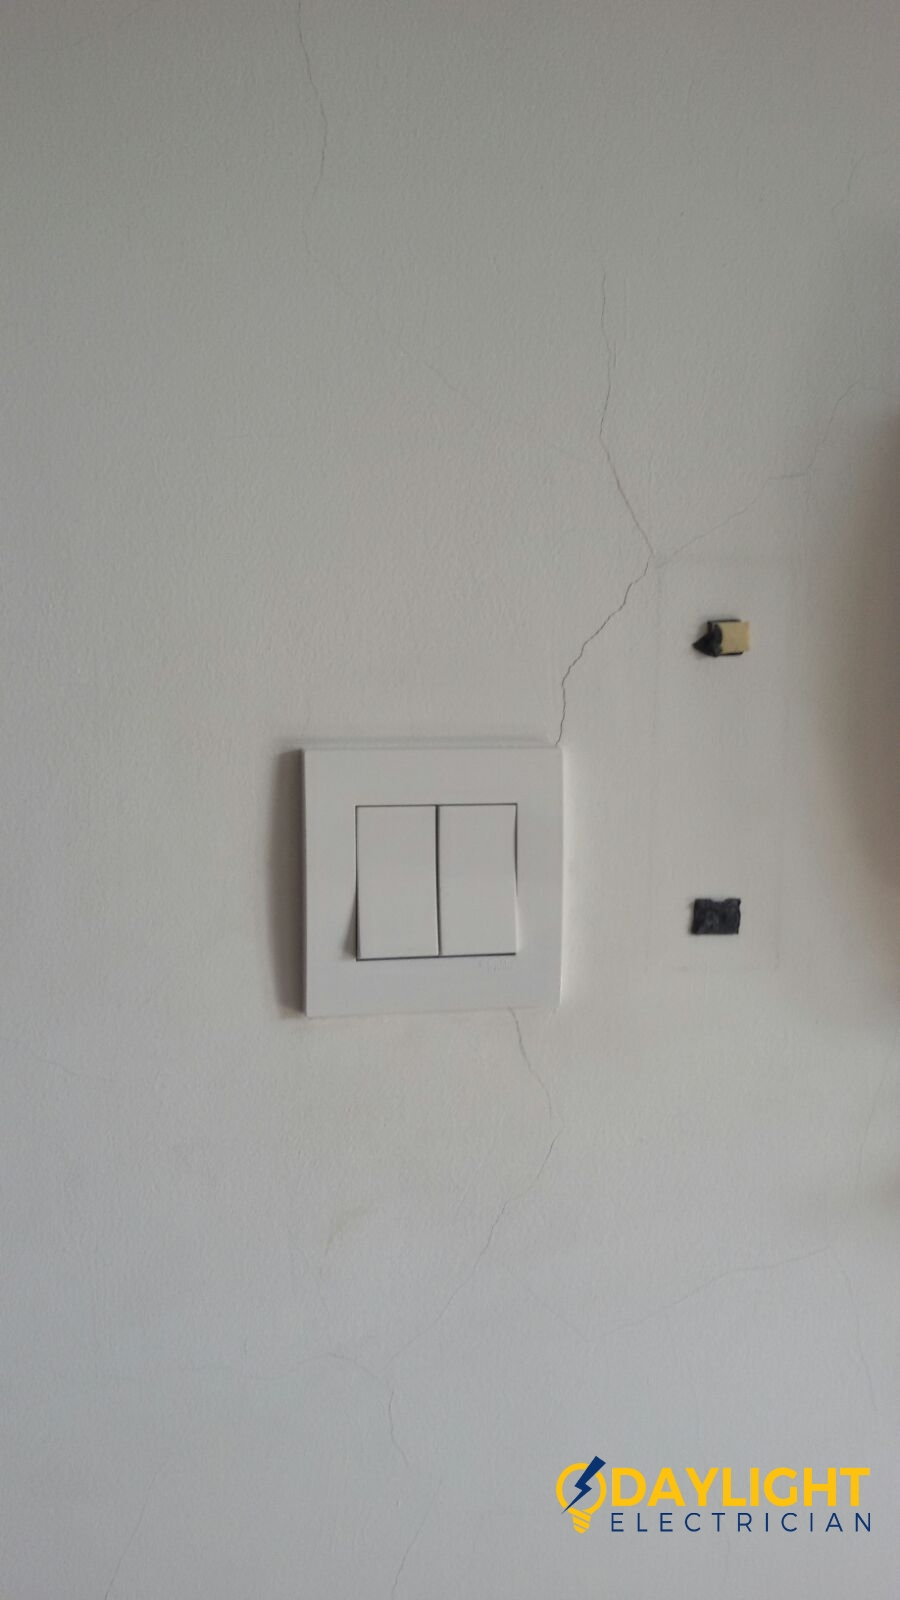 Change-light-switches-light-bulbs-electrician-singapore-landed-cashew-road-10_wm